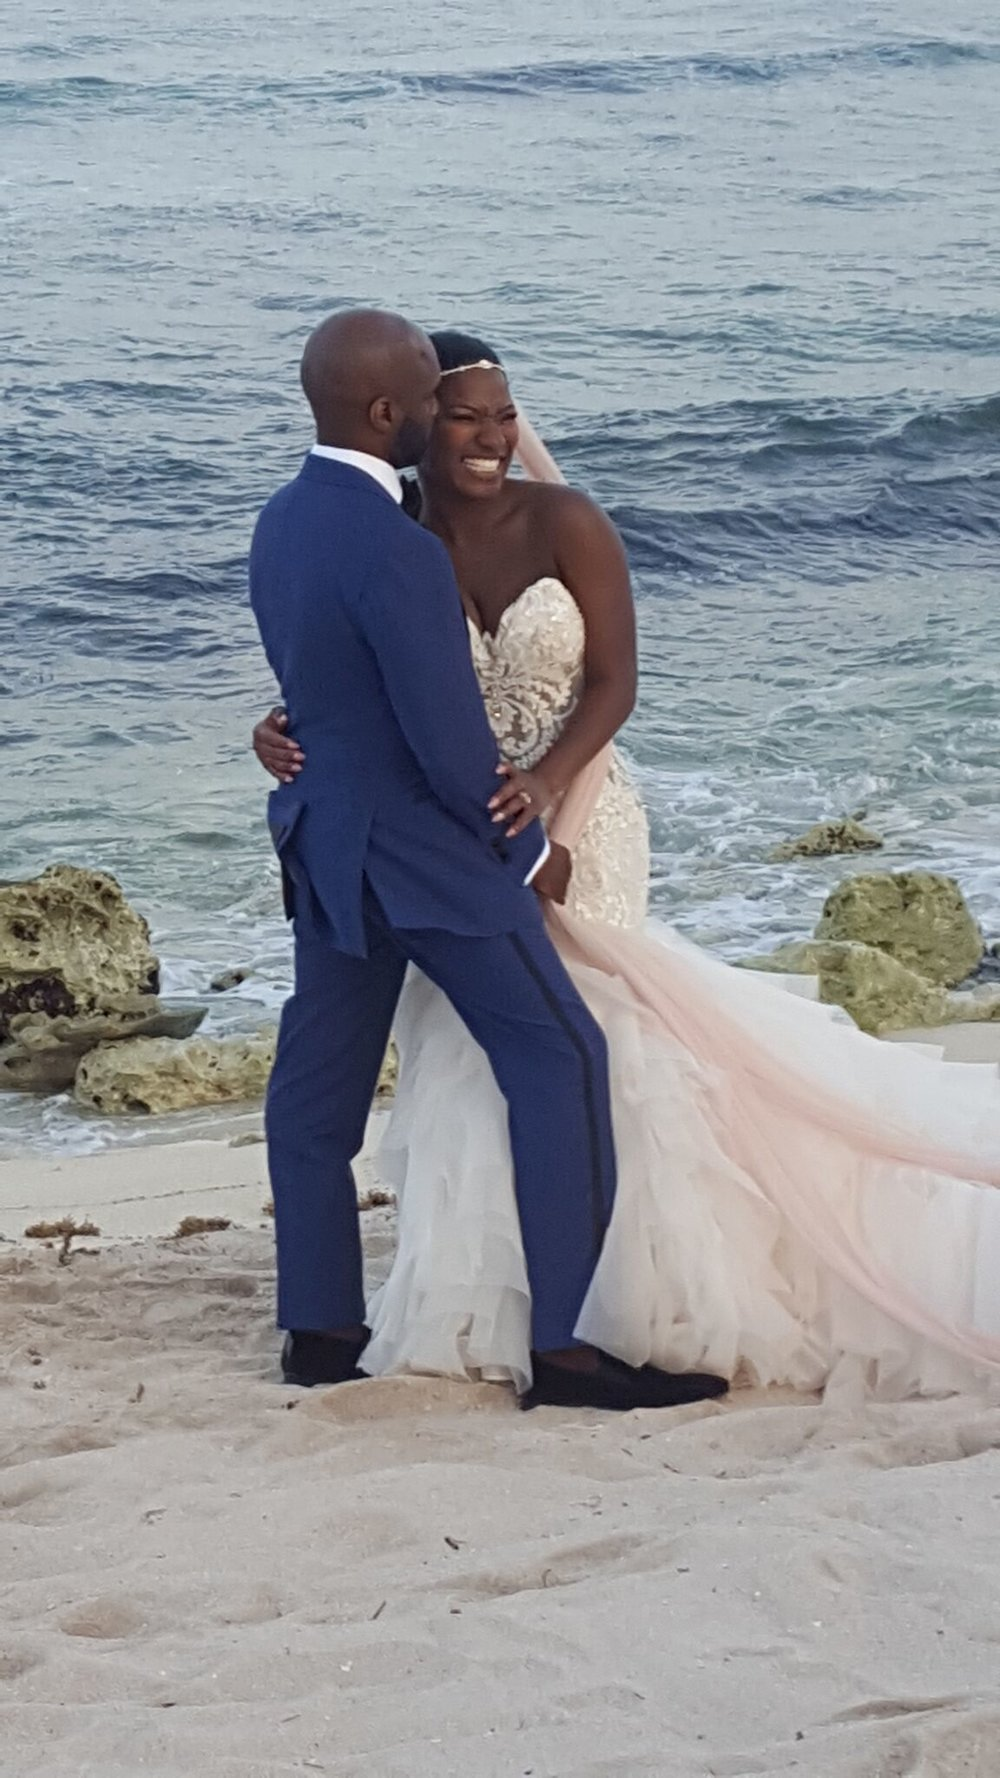 Black Destination Bride - Bridefriends Guide to Destination Weddings Podcast - BlackDesti Countdown - Blue Venado Beach Club - Shenko Photography - Mexico Wedding Photo Ivory Perkins Beauty - Eve of Milady 1560 2.jpg